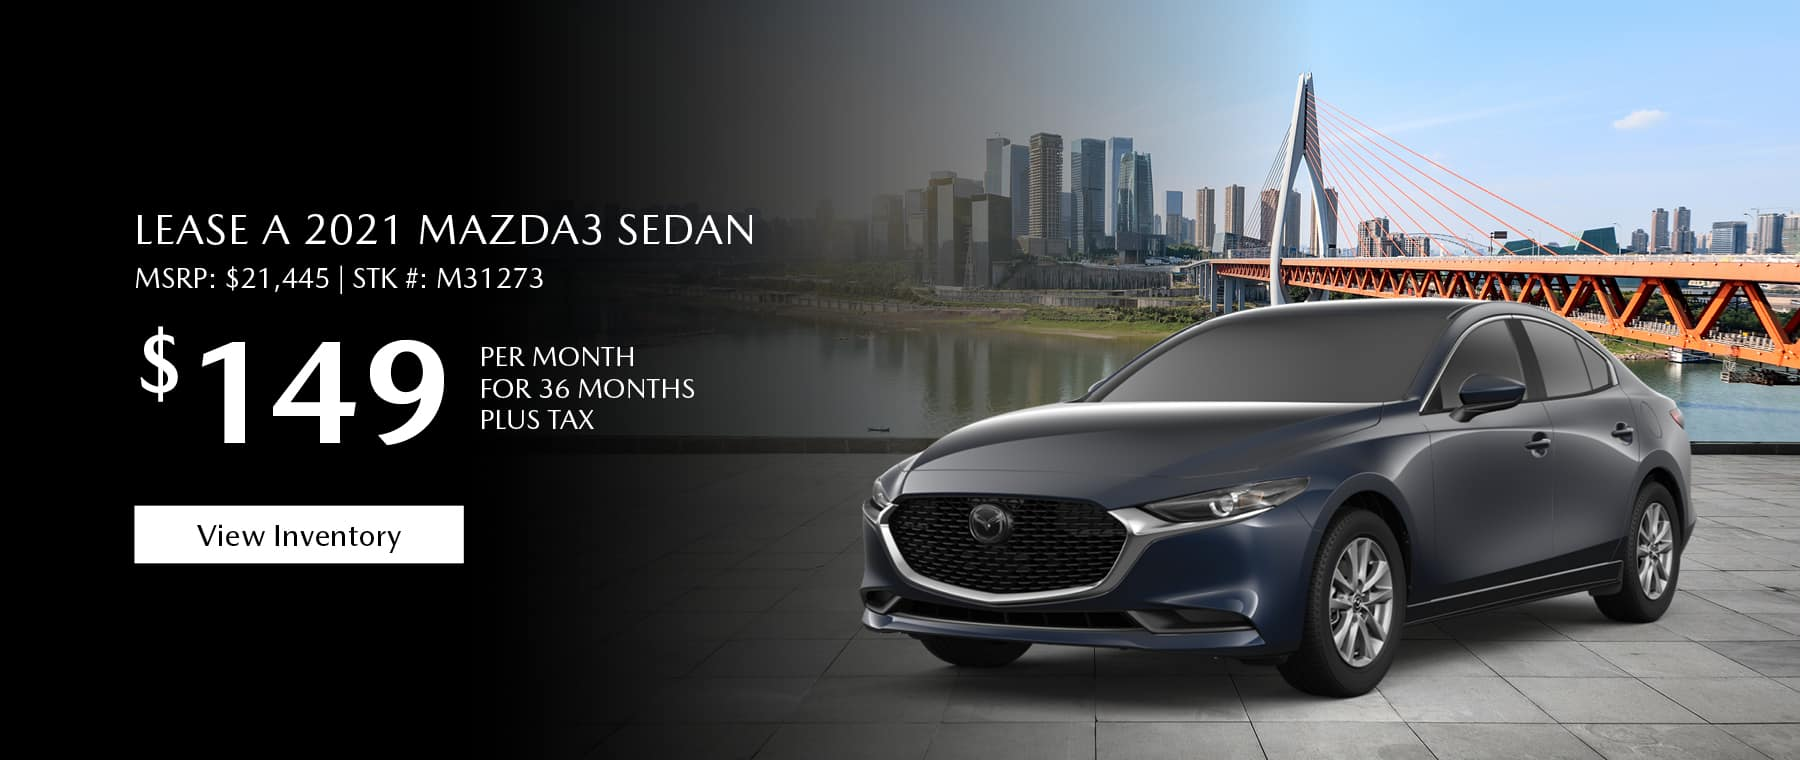 Lease the 2021 Mazda3 sedan for $149 per month, plus tax for 36 months. Click or tap here to view our inventory.